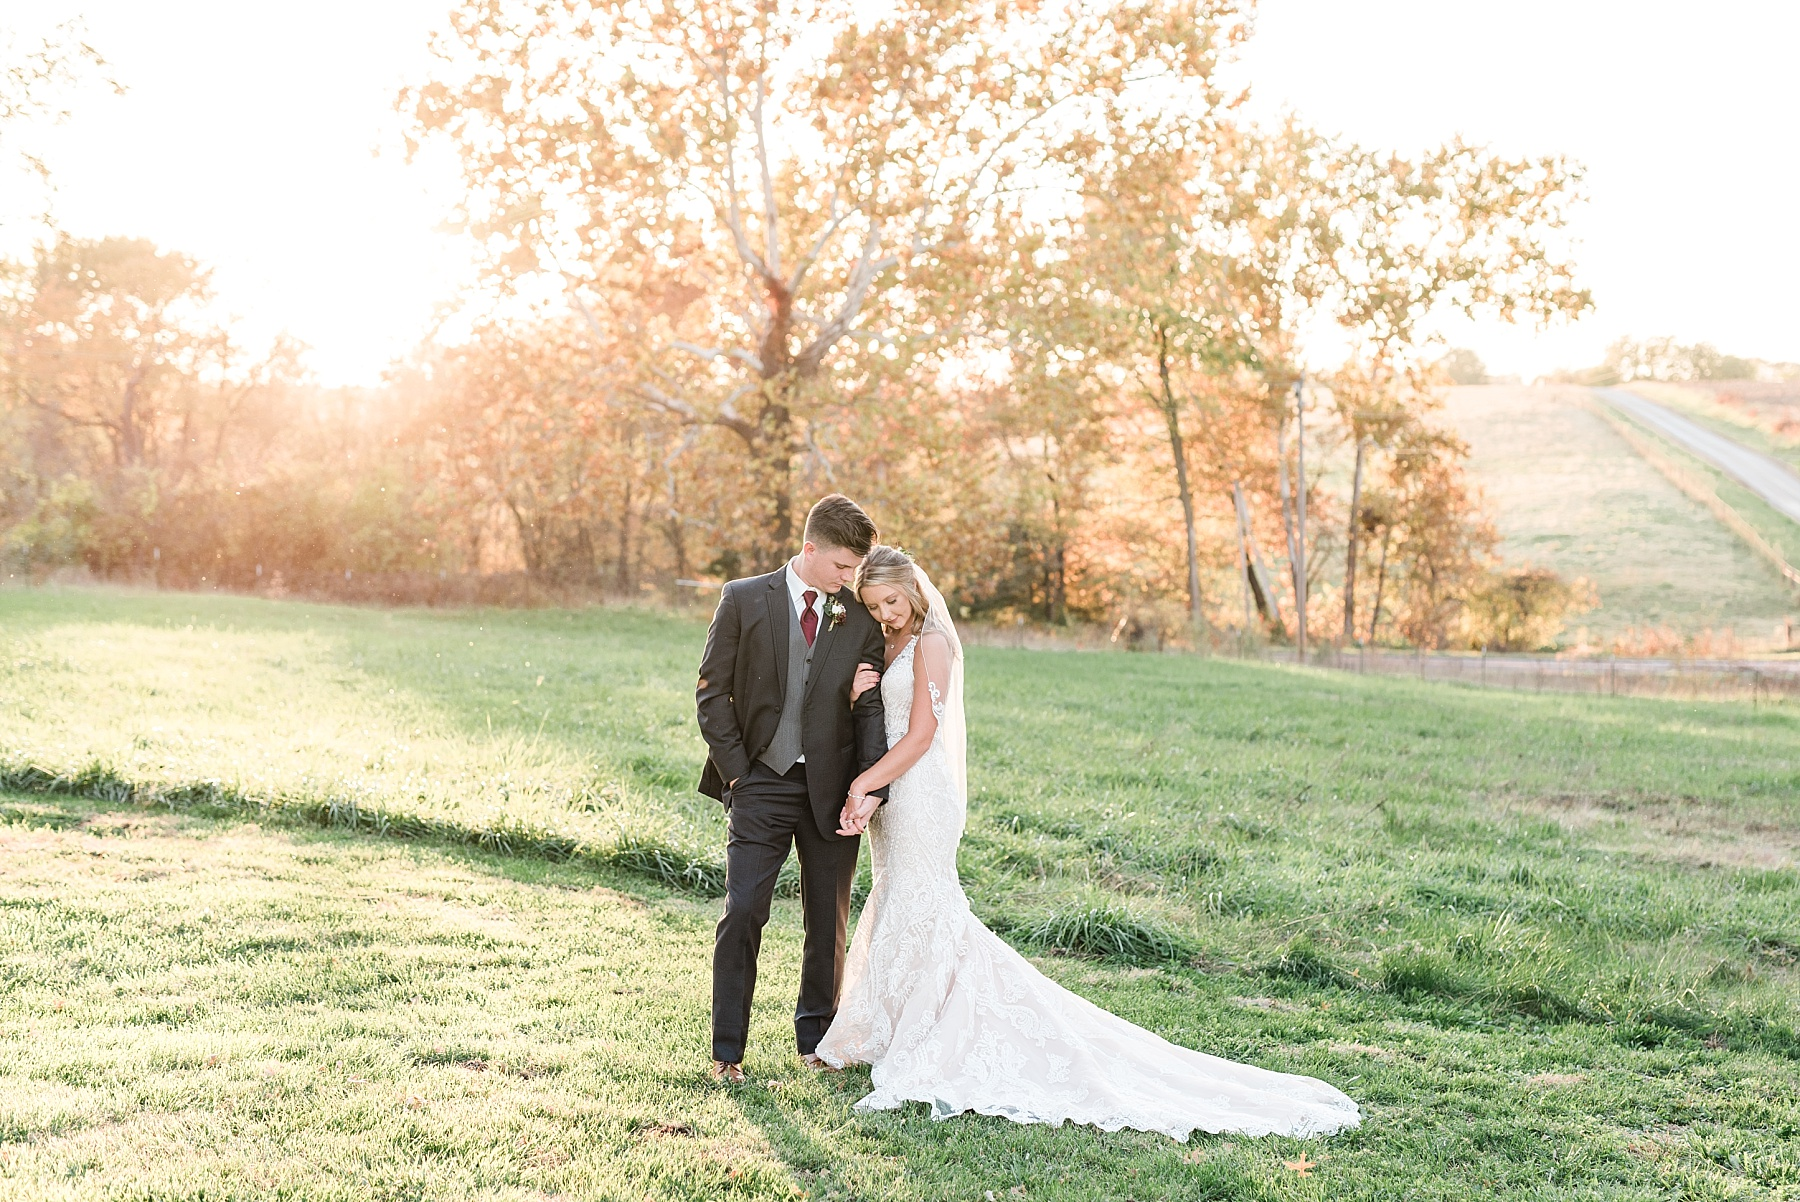 Golden Autumn Outdoor Wedding with Ivory, Bergundy, and Blush Color Palette at Blue Bell Farms  by Kelsi Kliethermes Photography_0036.jpg